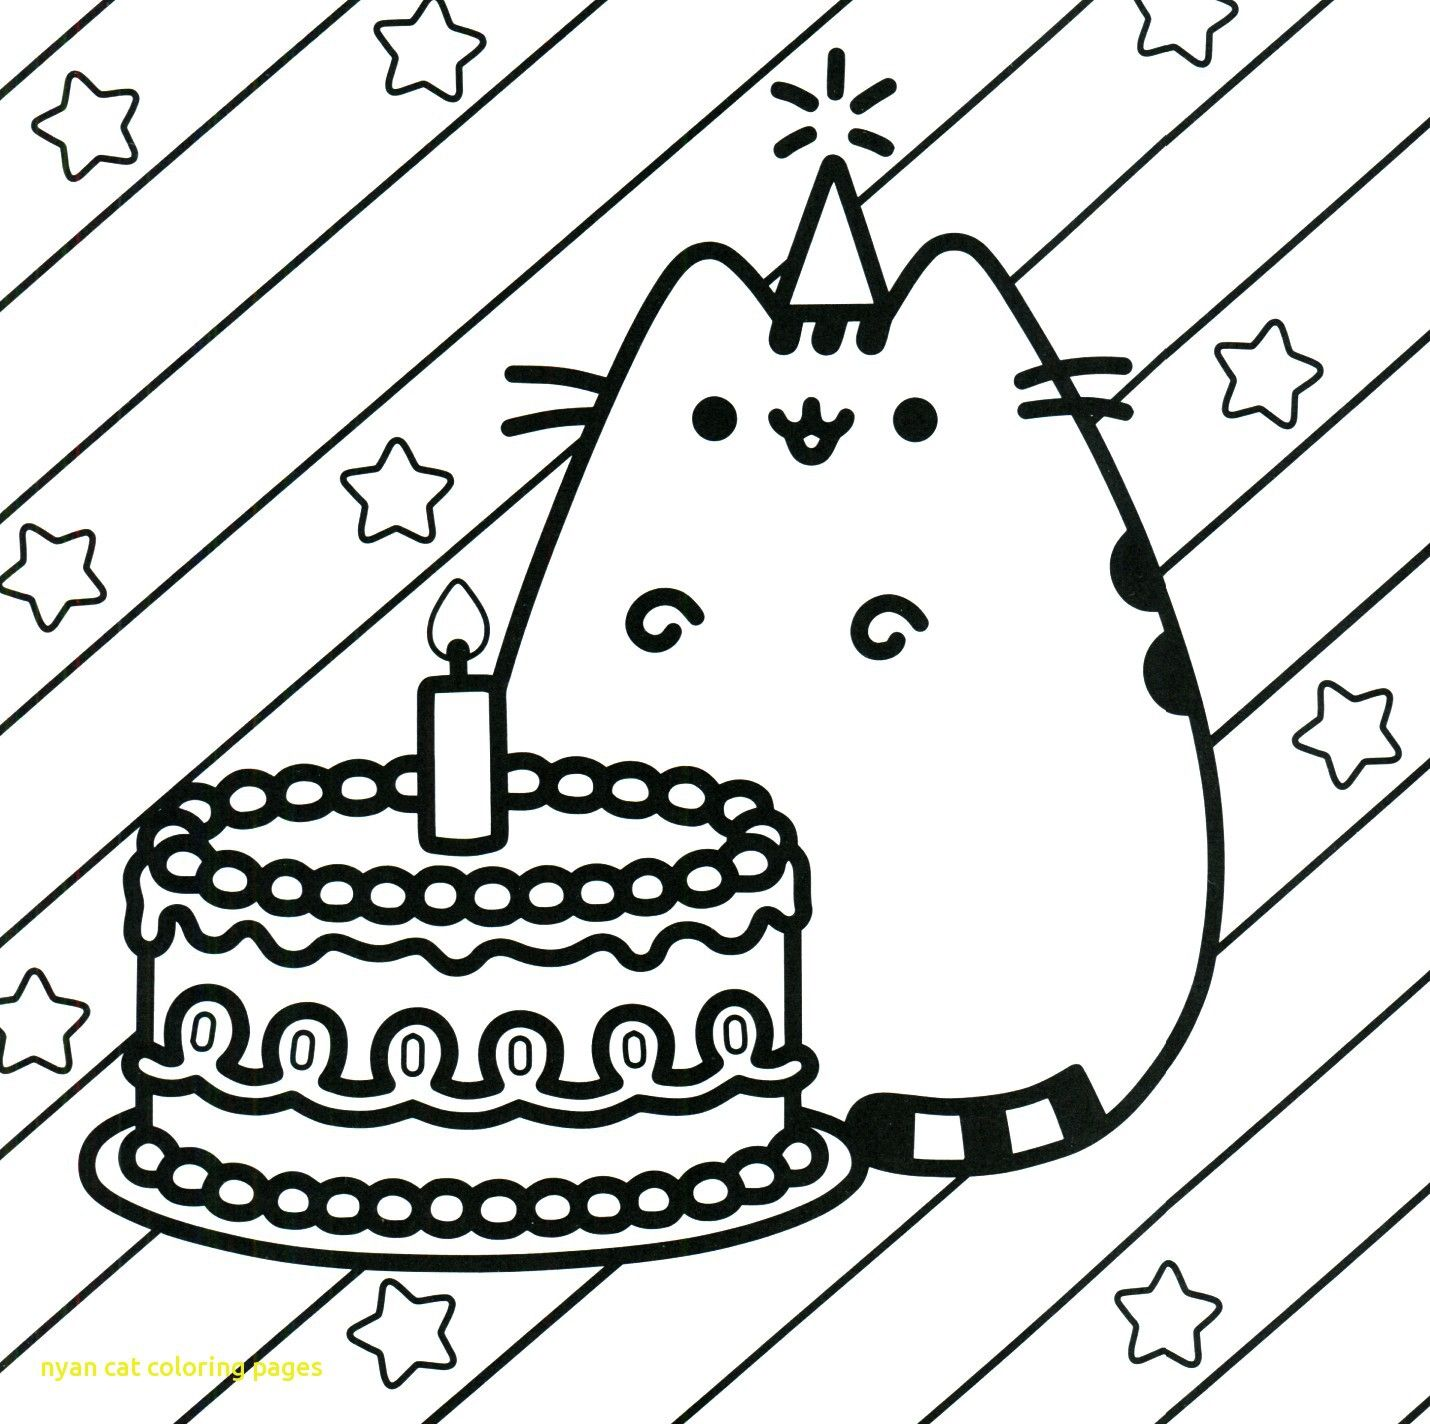 Nyan Cat Coloring Pages With Nyan Cat Coloring Pages Rosendorf Birthday Coloring Pages Happy Birthday Coloring Pages Unicorn Coloring Pages